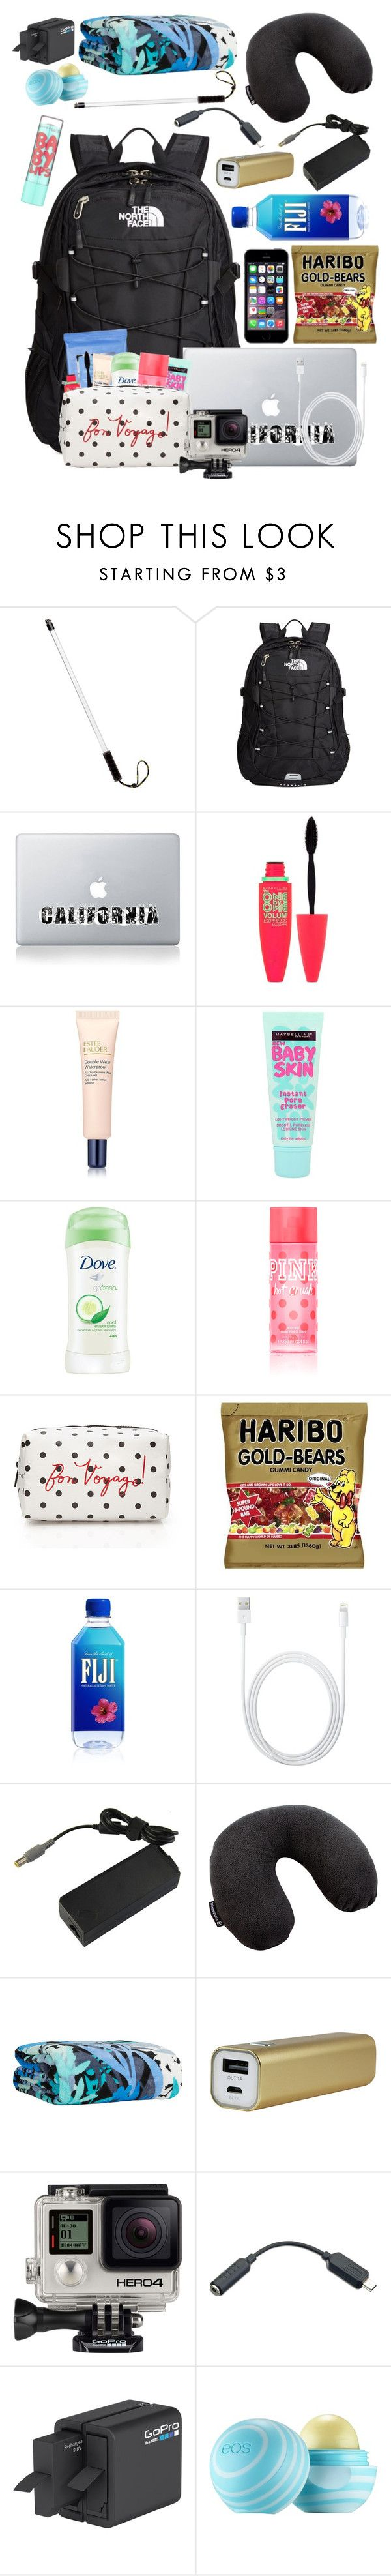 """""""Mexico Mission Trip: Back Pack carry on"""" by dejonggirls ❤ liked on Polyvore featuring interior, interiors, interior design, home, home decor, interior decorating, GoPro, The North Face, Neutrogena and Maybelline"""